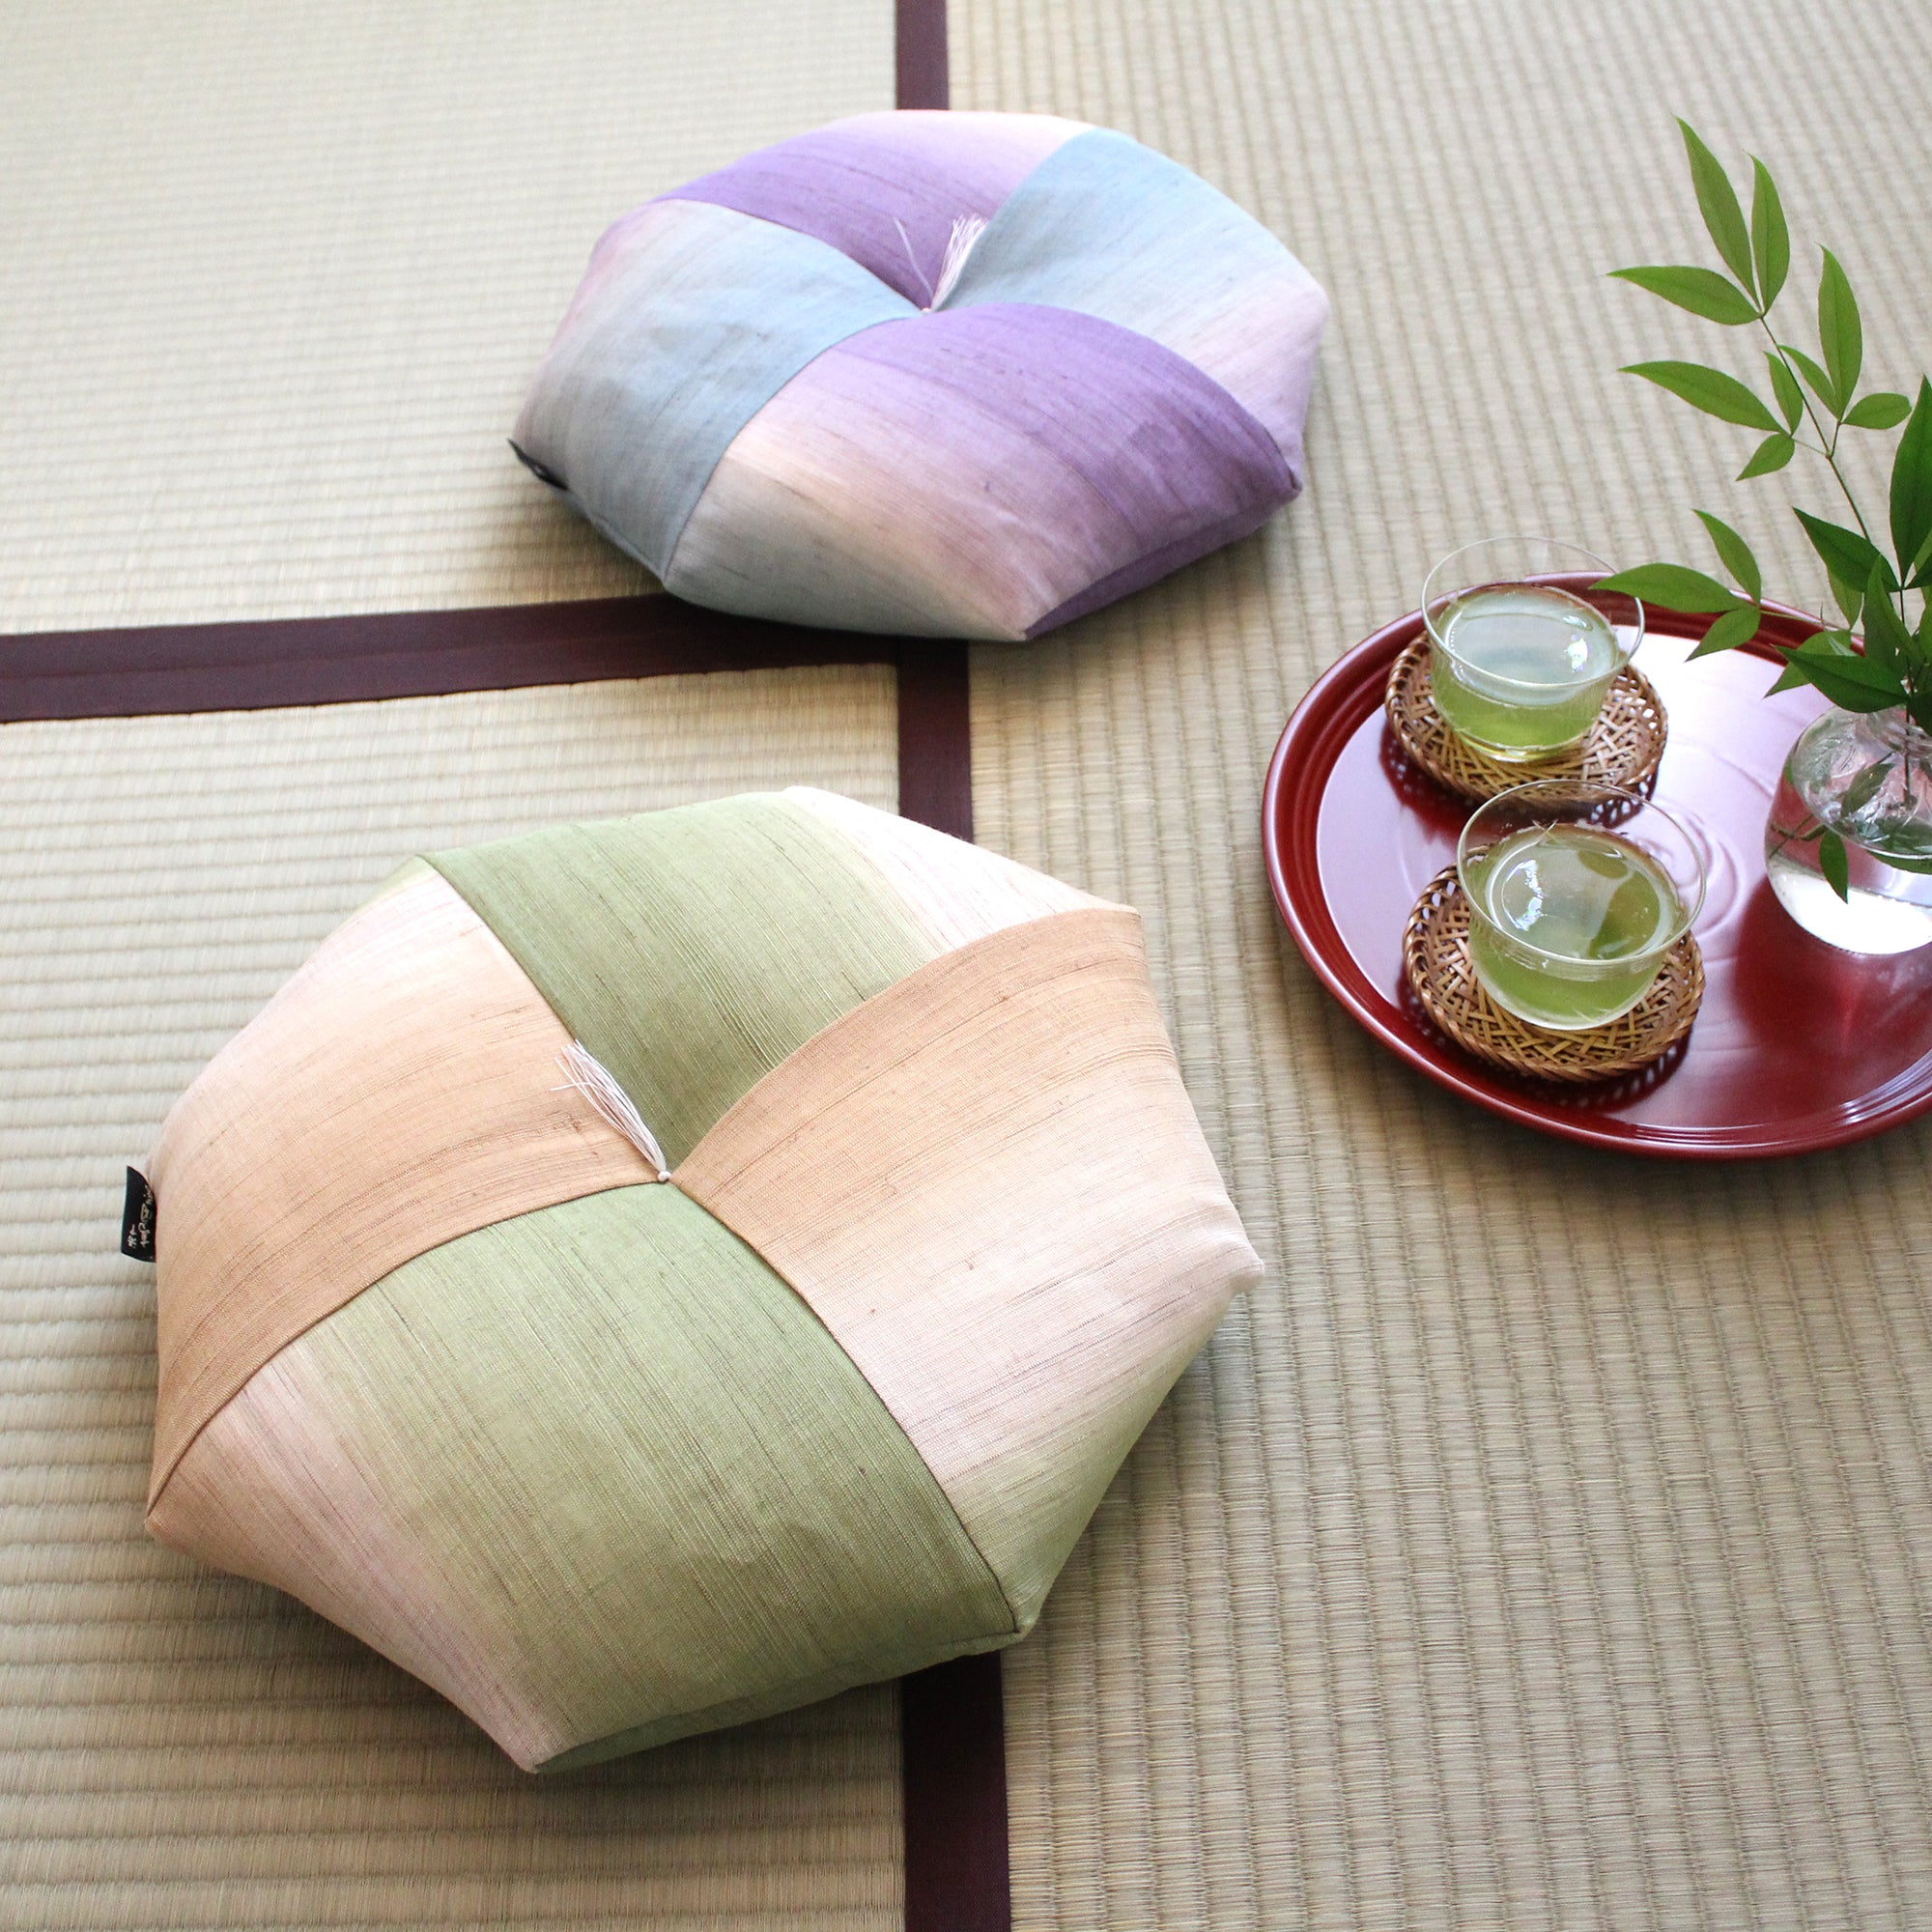 Ojami Flat Cushion | Hikizome - Takaokaya